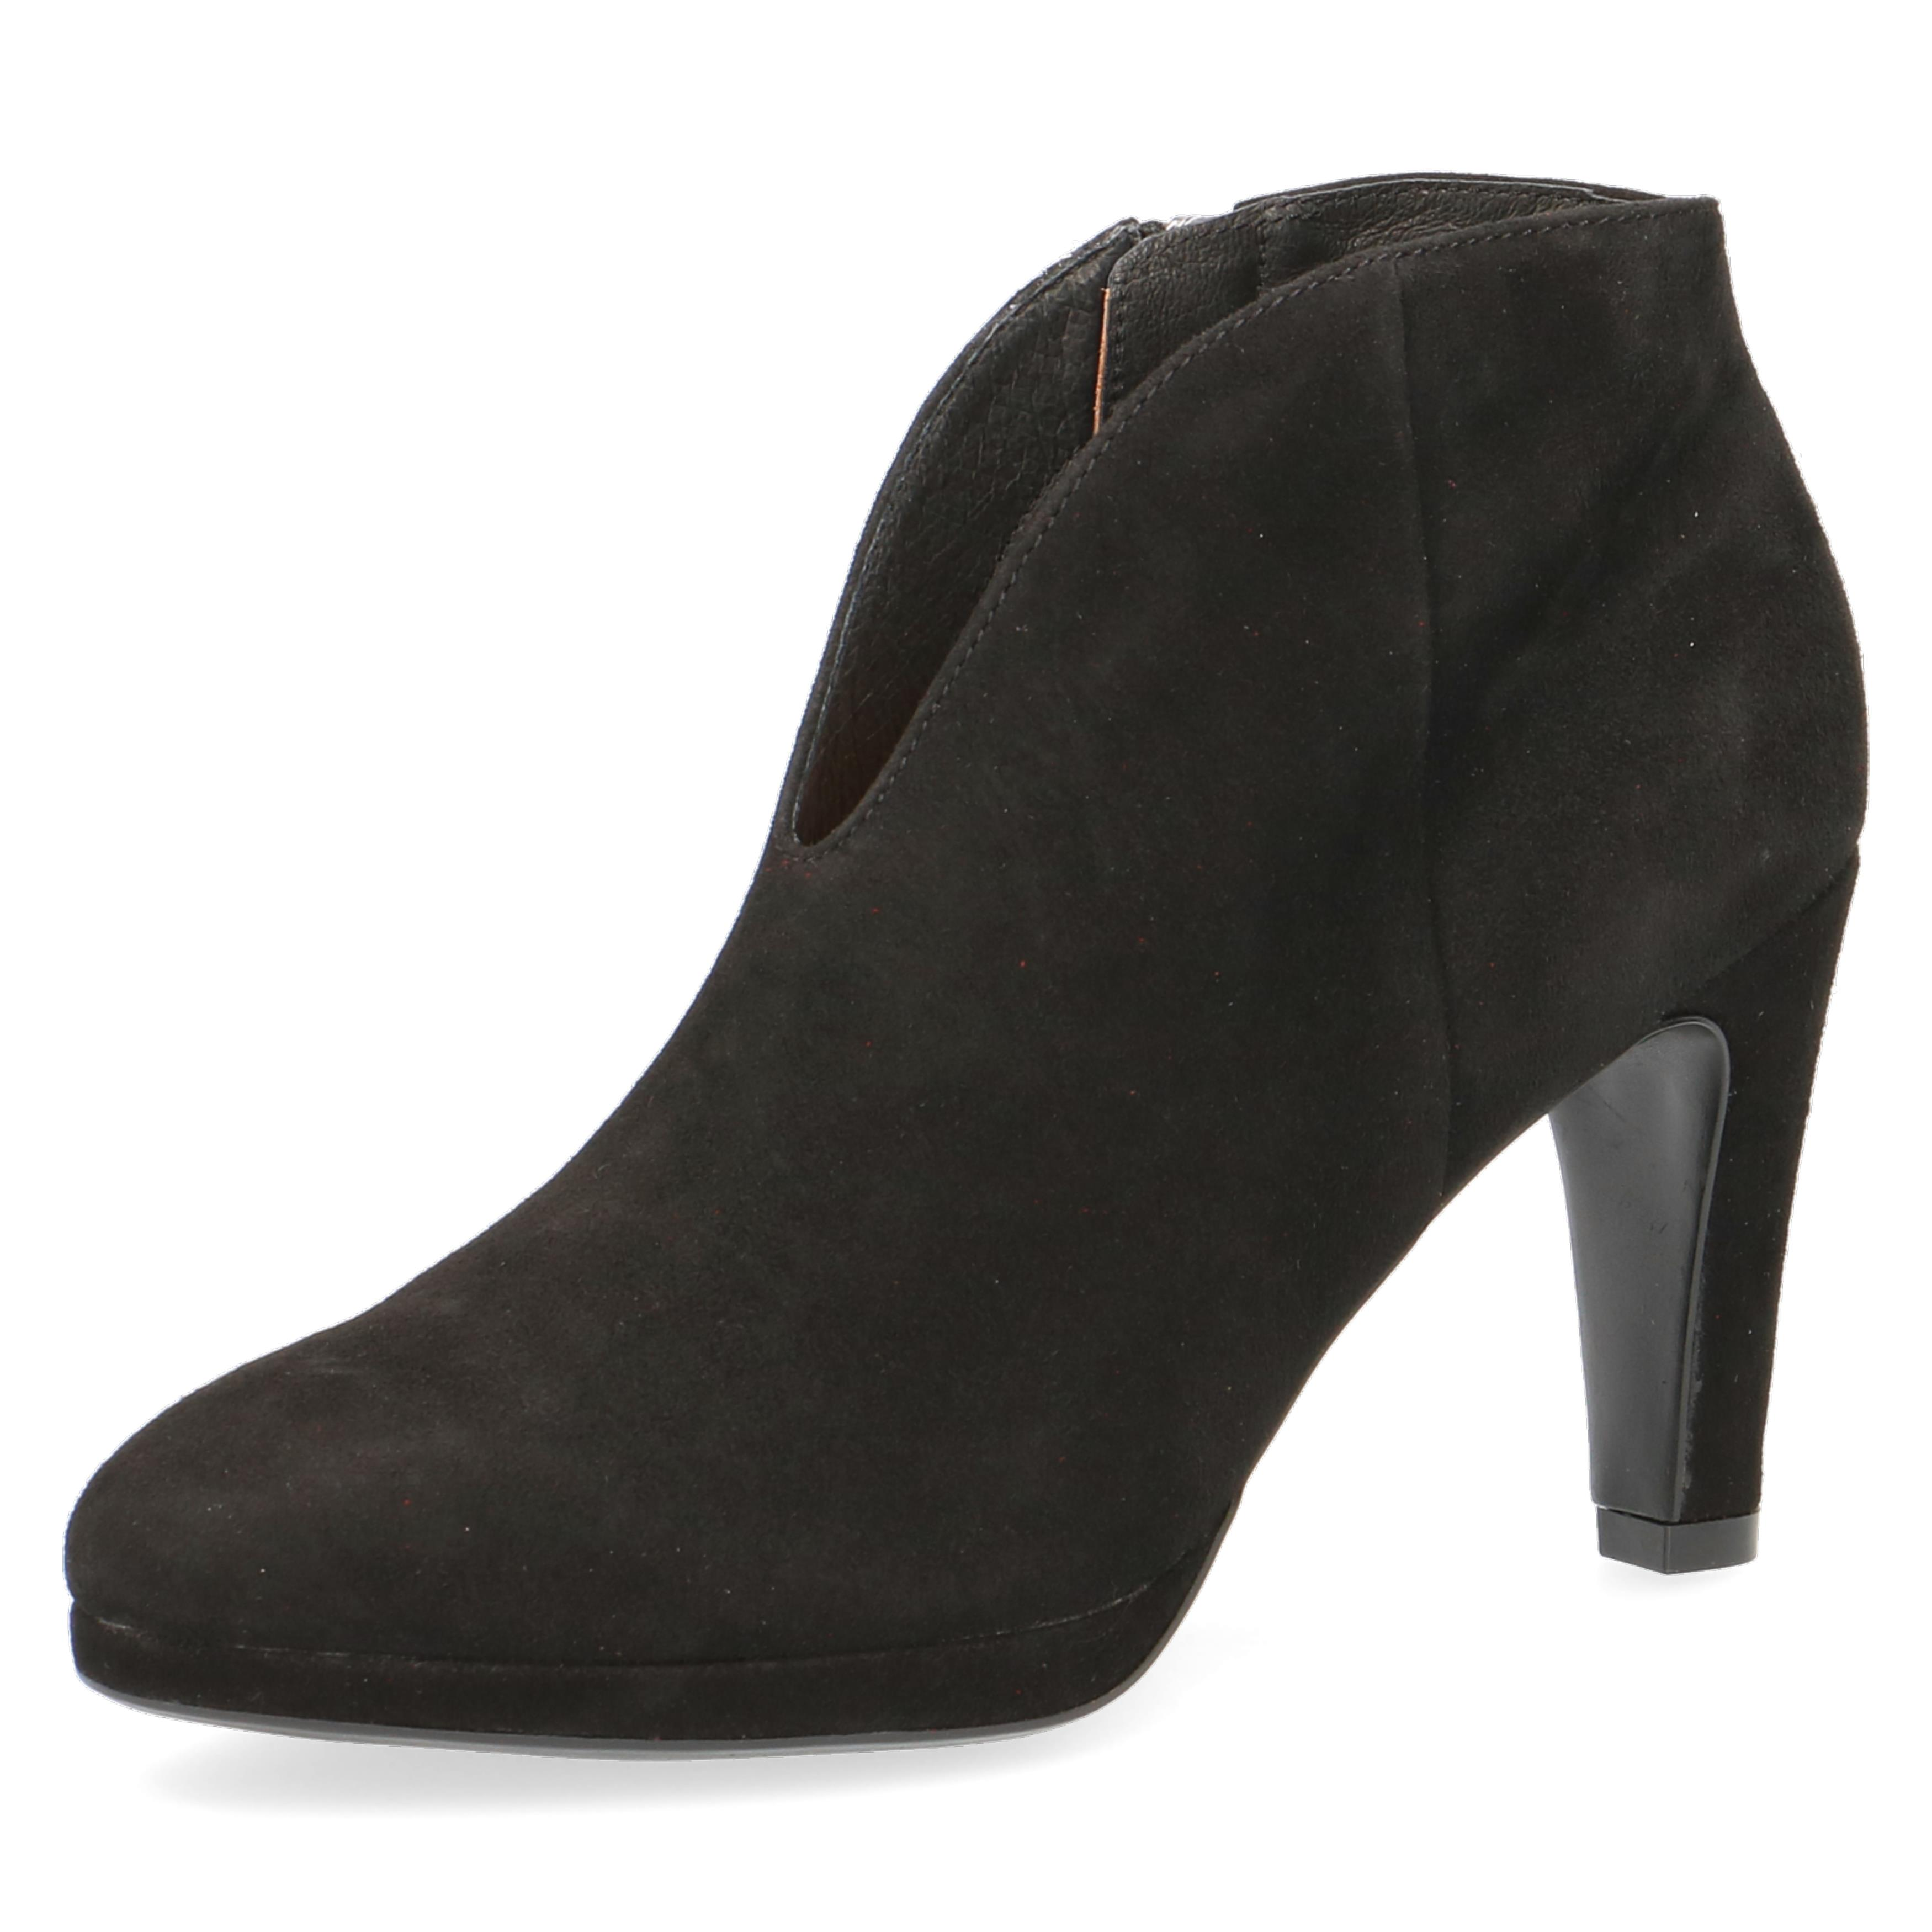 Caprice Black Suede Ankle Boot inside Zip